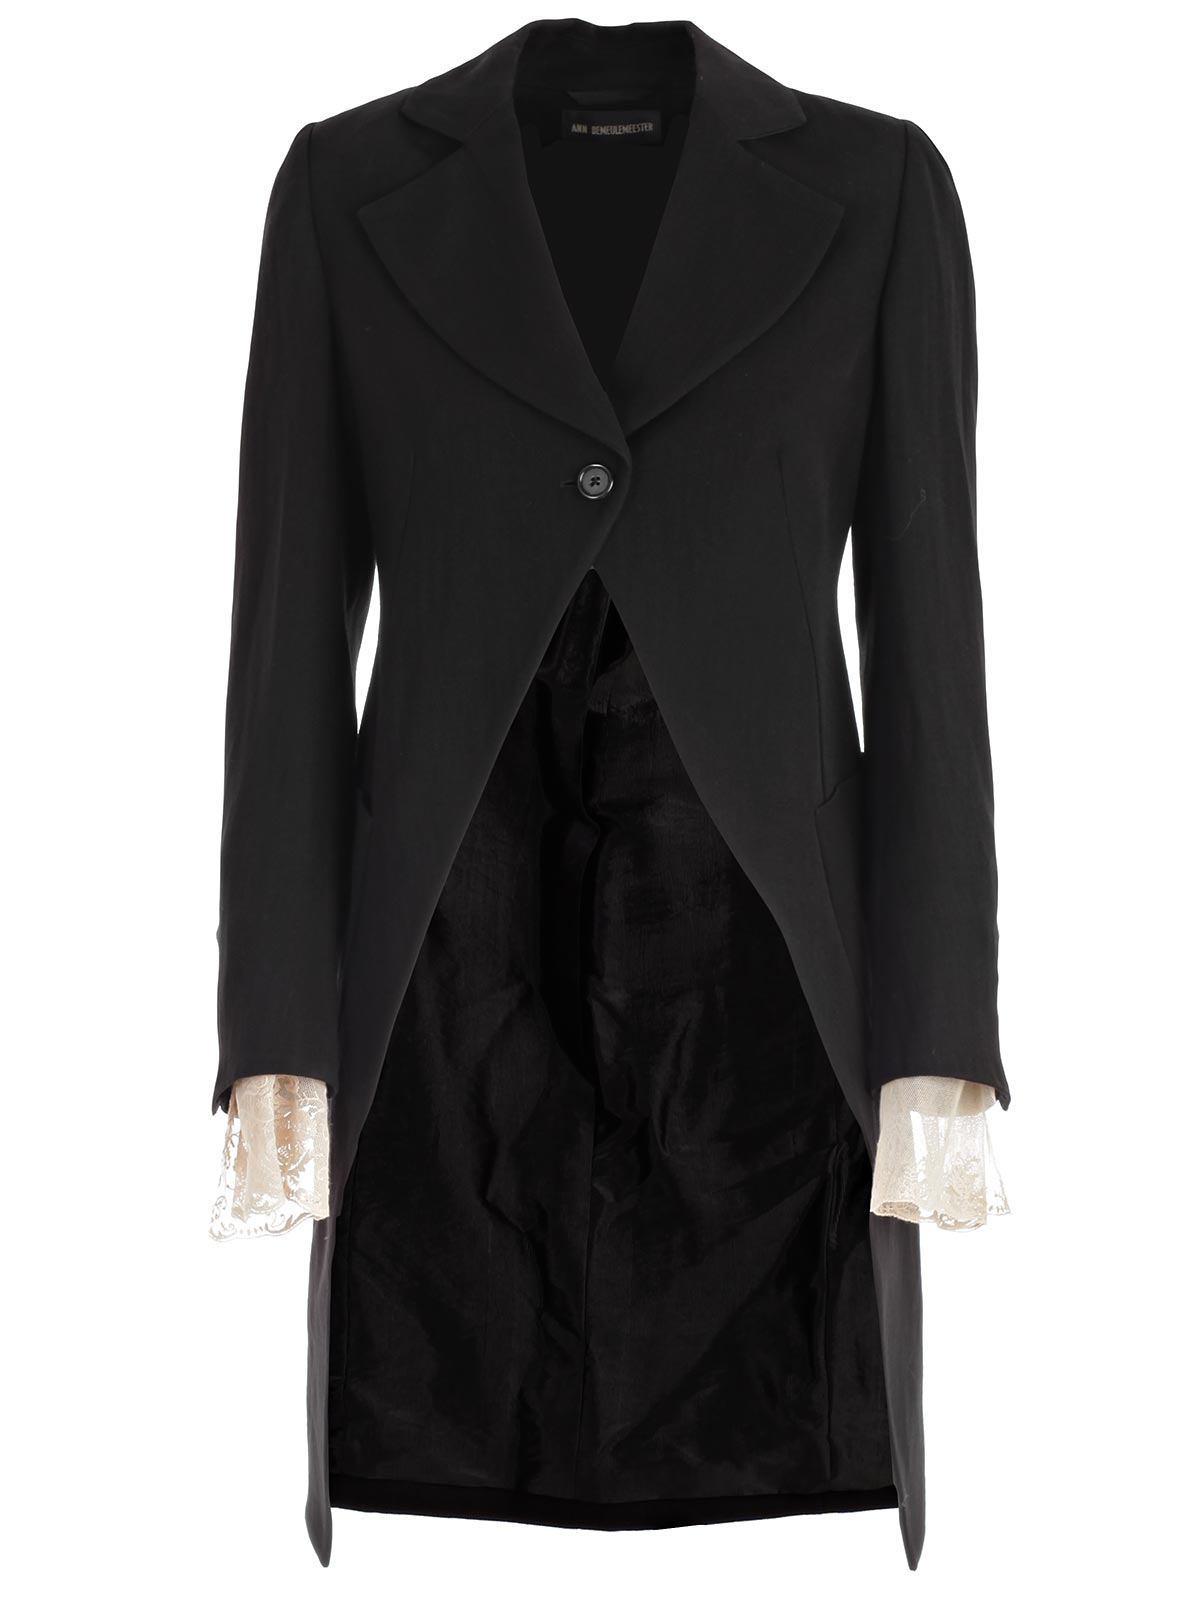 Picture of ANN DEMEULEMESTER COAT